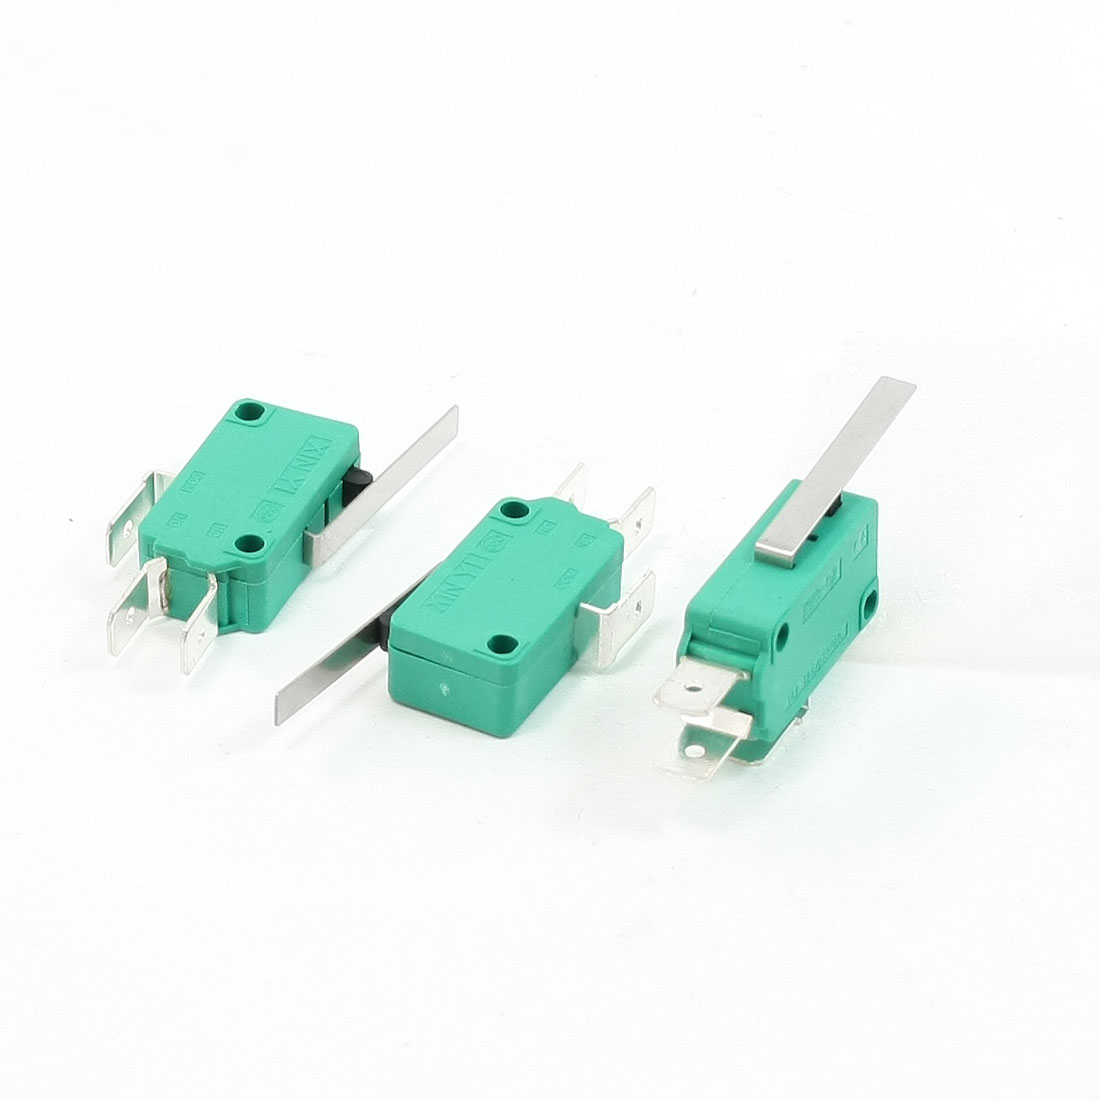 3 Pcs AC 250V 16A SPDT 3-Terminal Short Straight Hinge Lever Mini Micro Switch Green